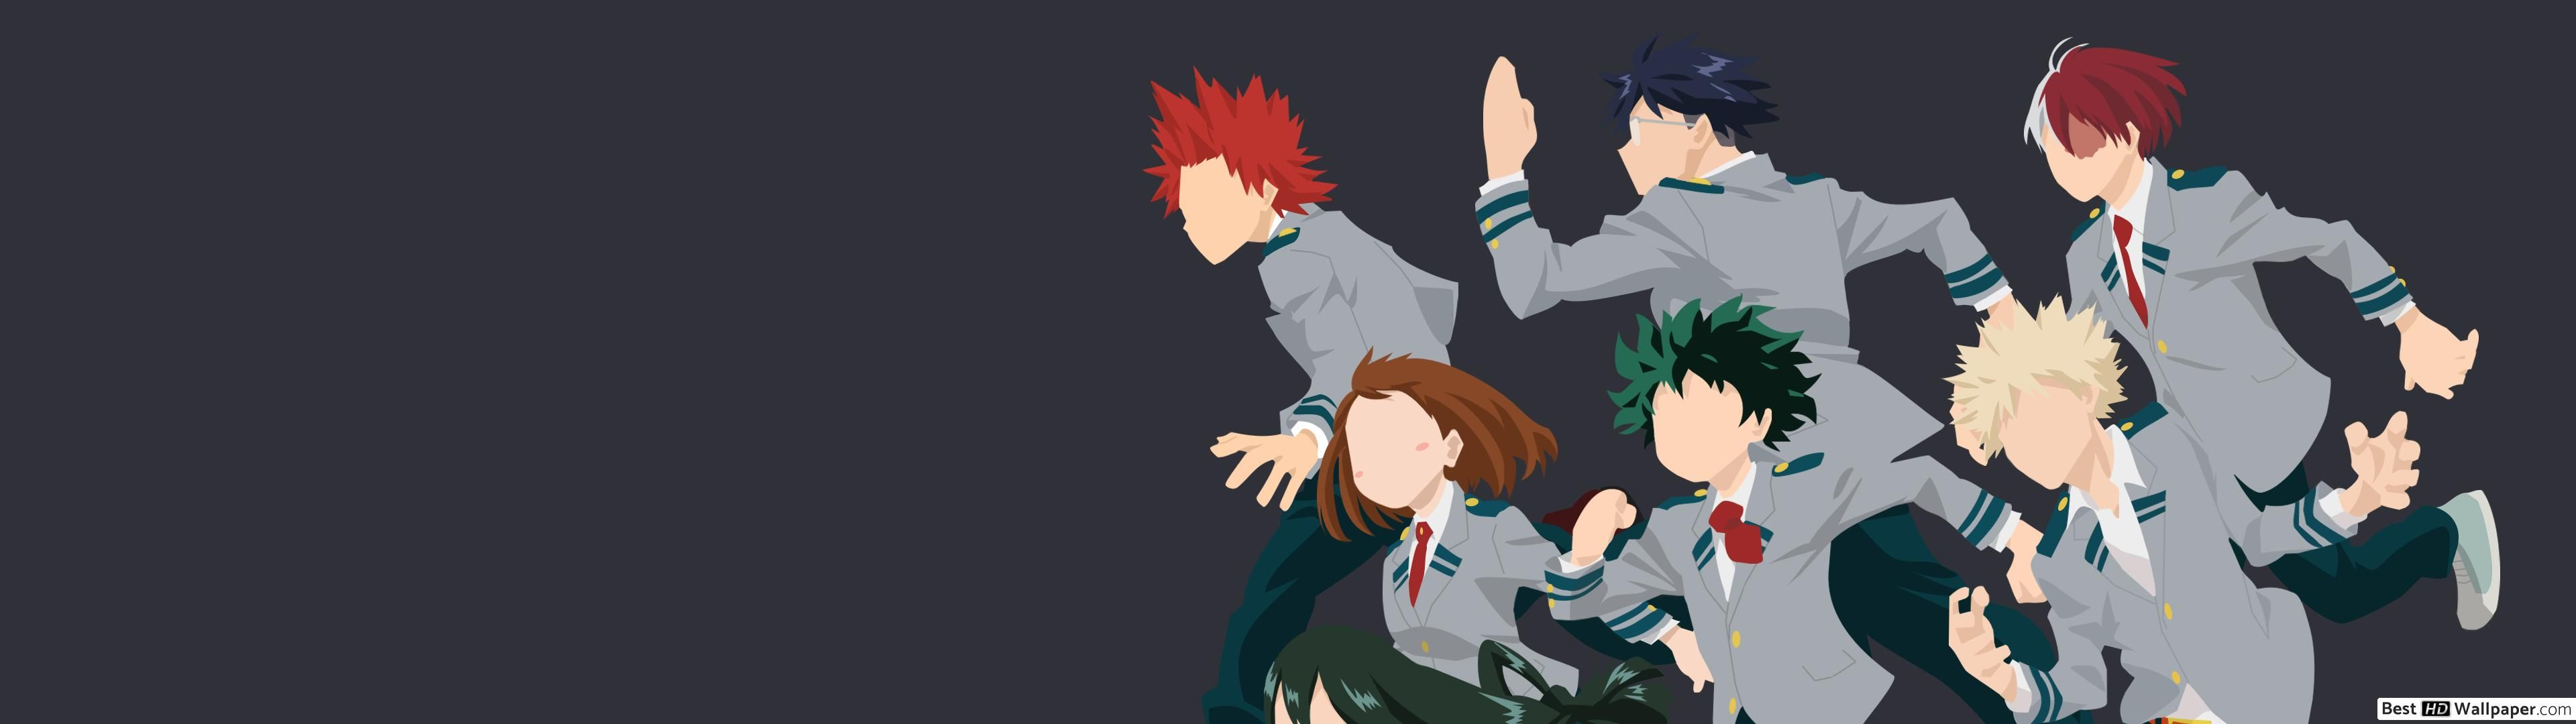 My Hero Academia Dual Wallpapers Top Free My Hero Academia Dual